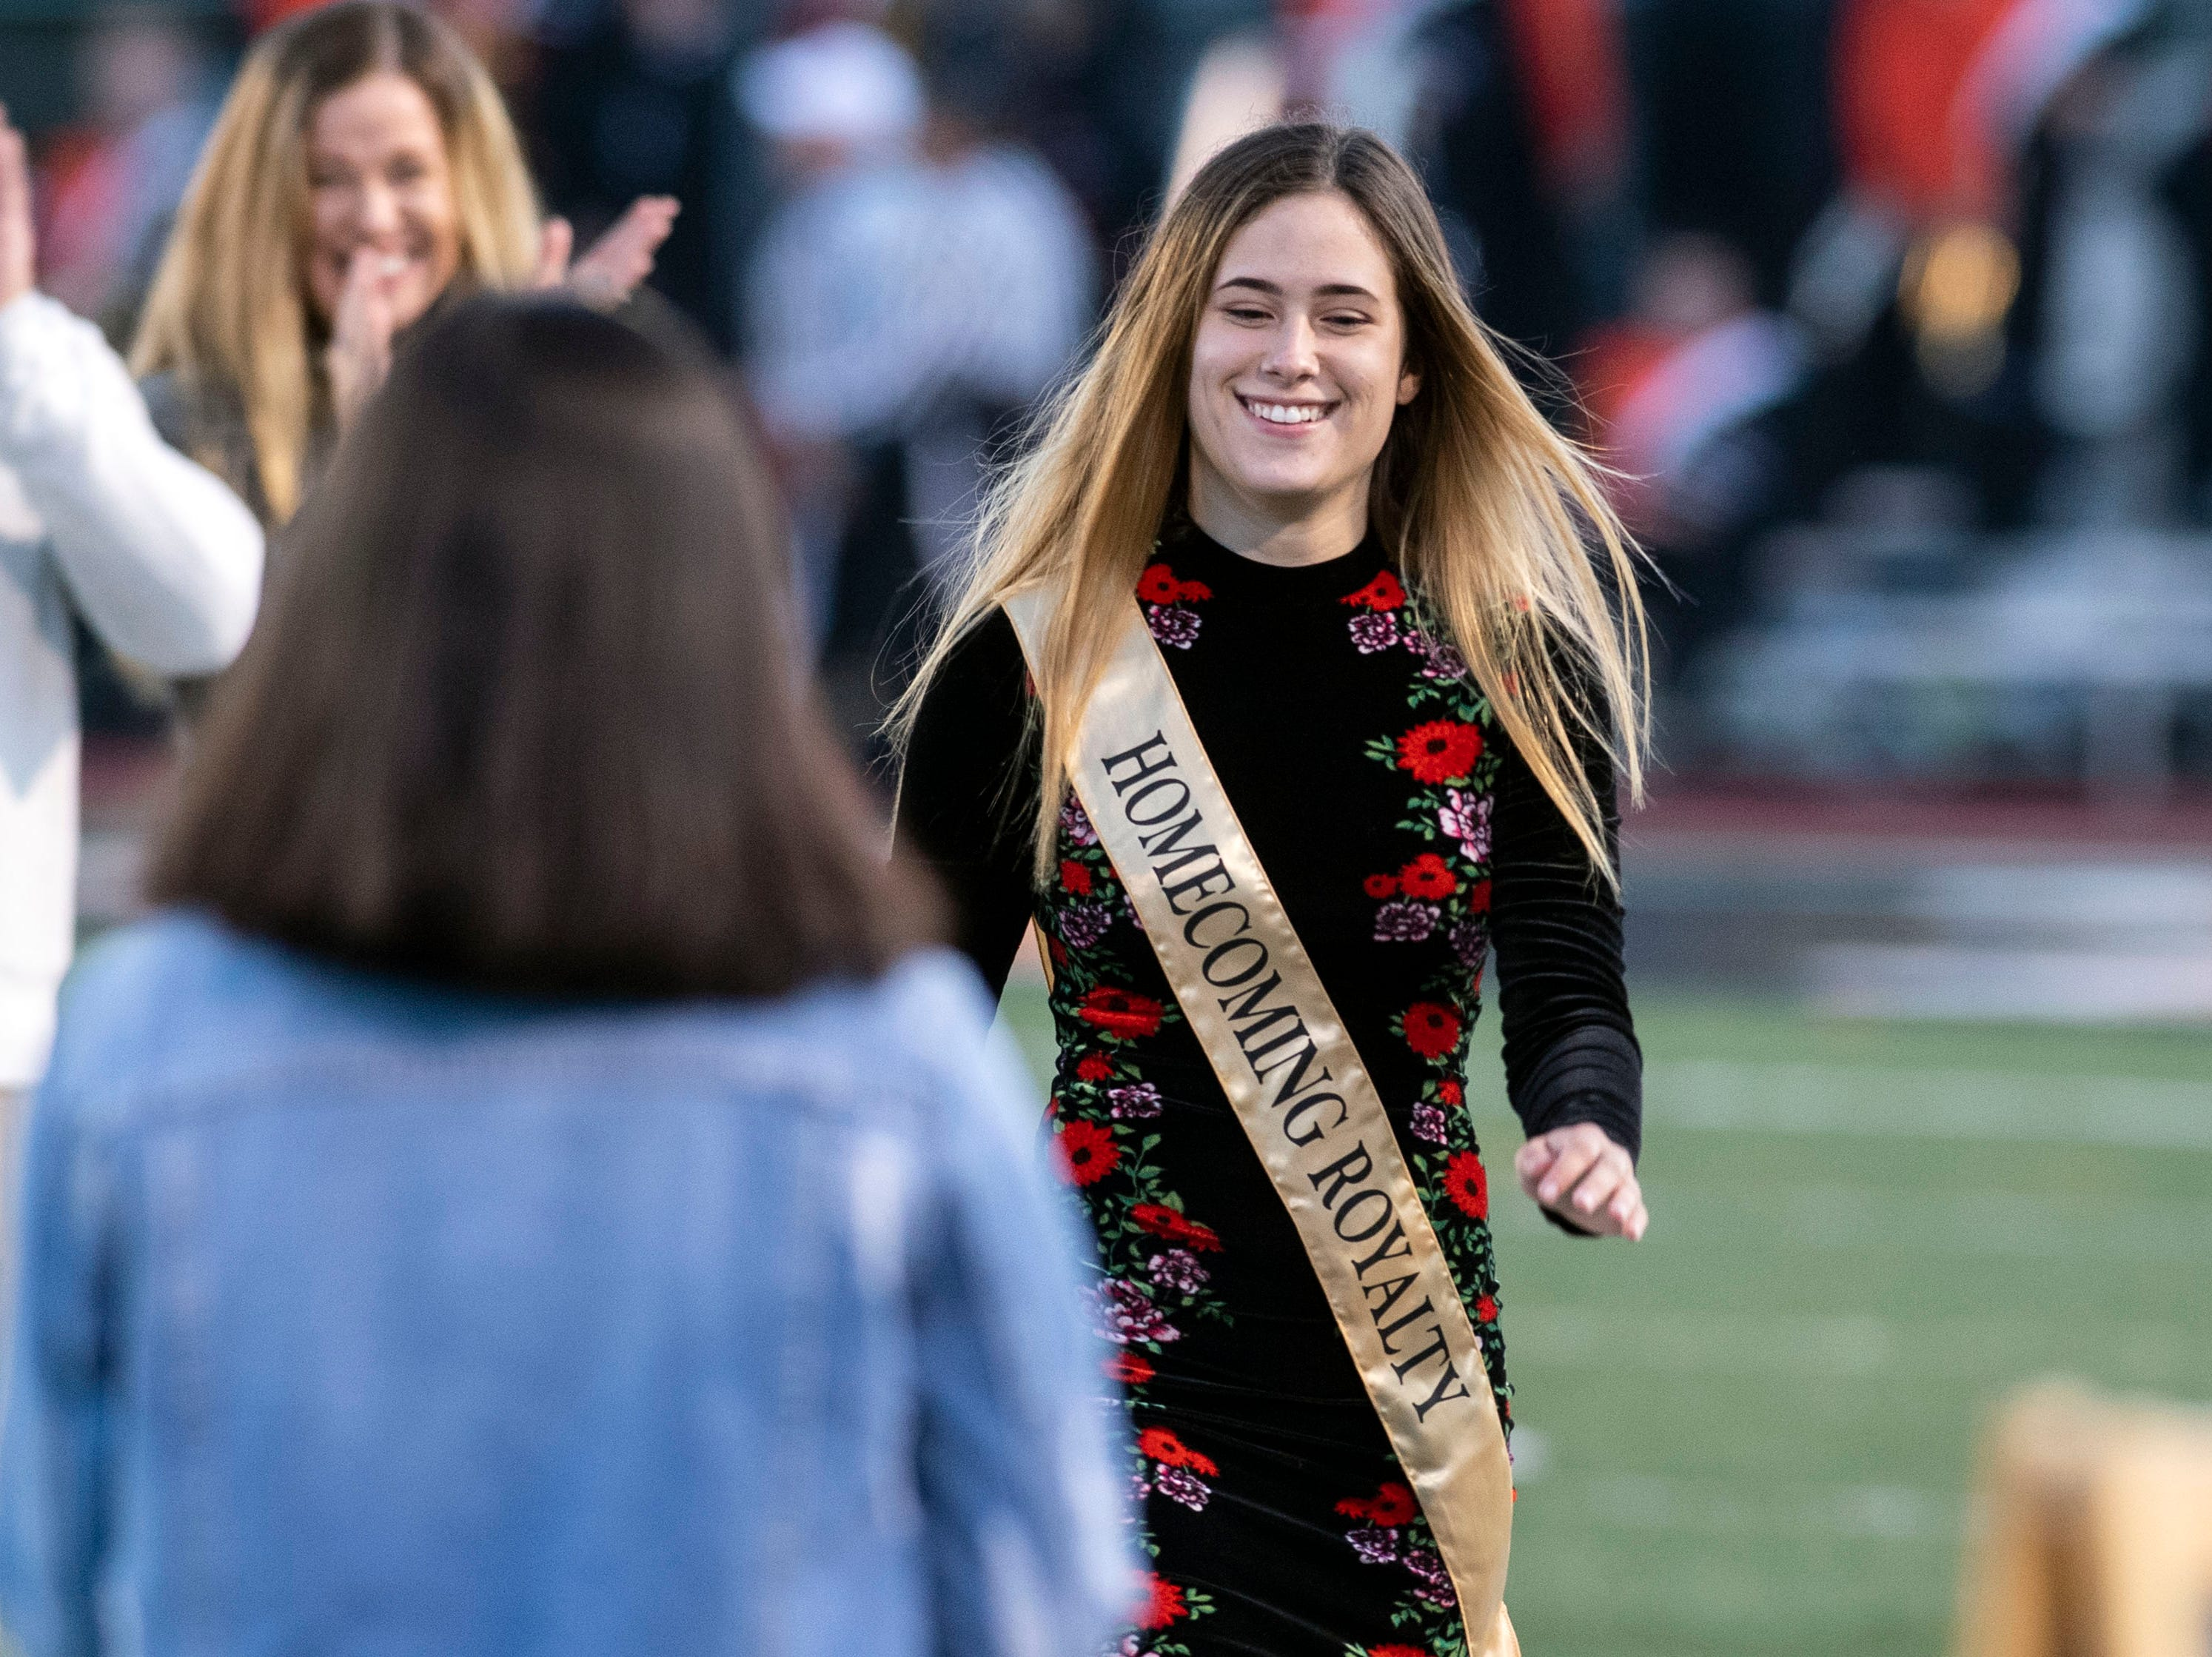 The Northeastern homecoming princess walks to be crowned prior to a YAIAA Division I football game at Northeastern High School on Friday, Oct. 12, 2018. The Central York Panthers beat the Northeastern Bobcats, 44-7.